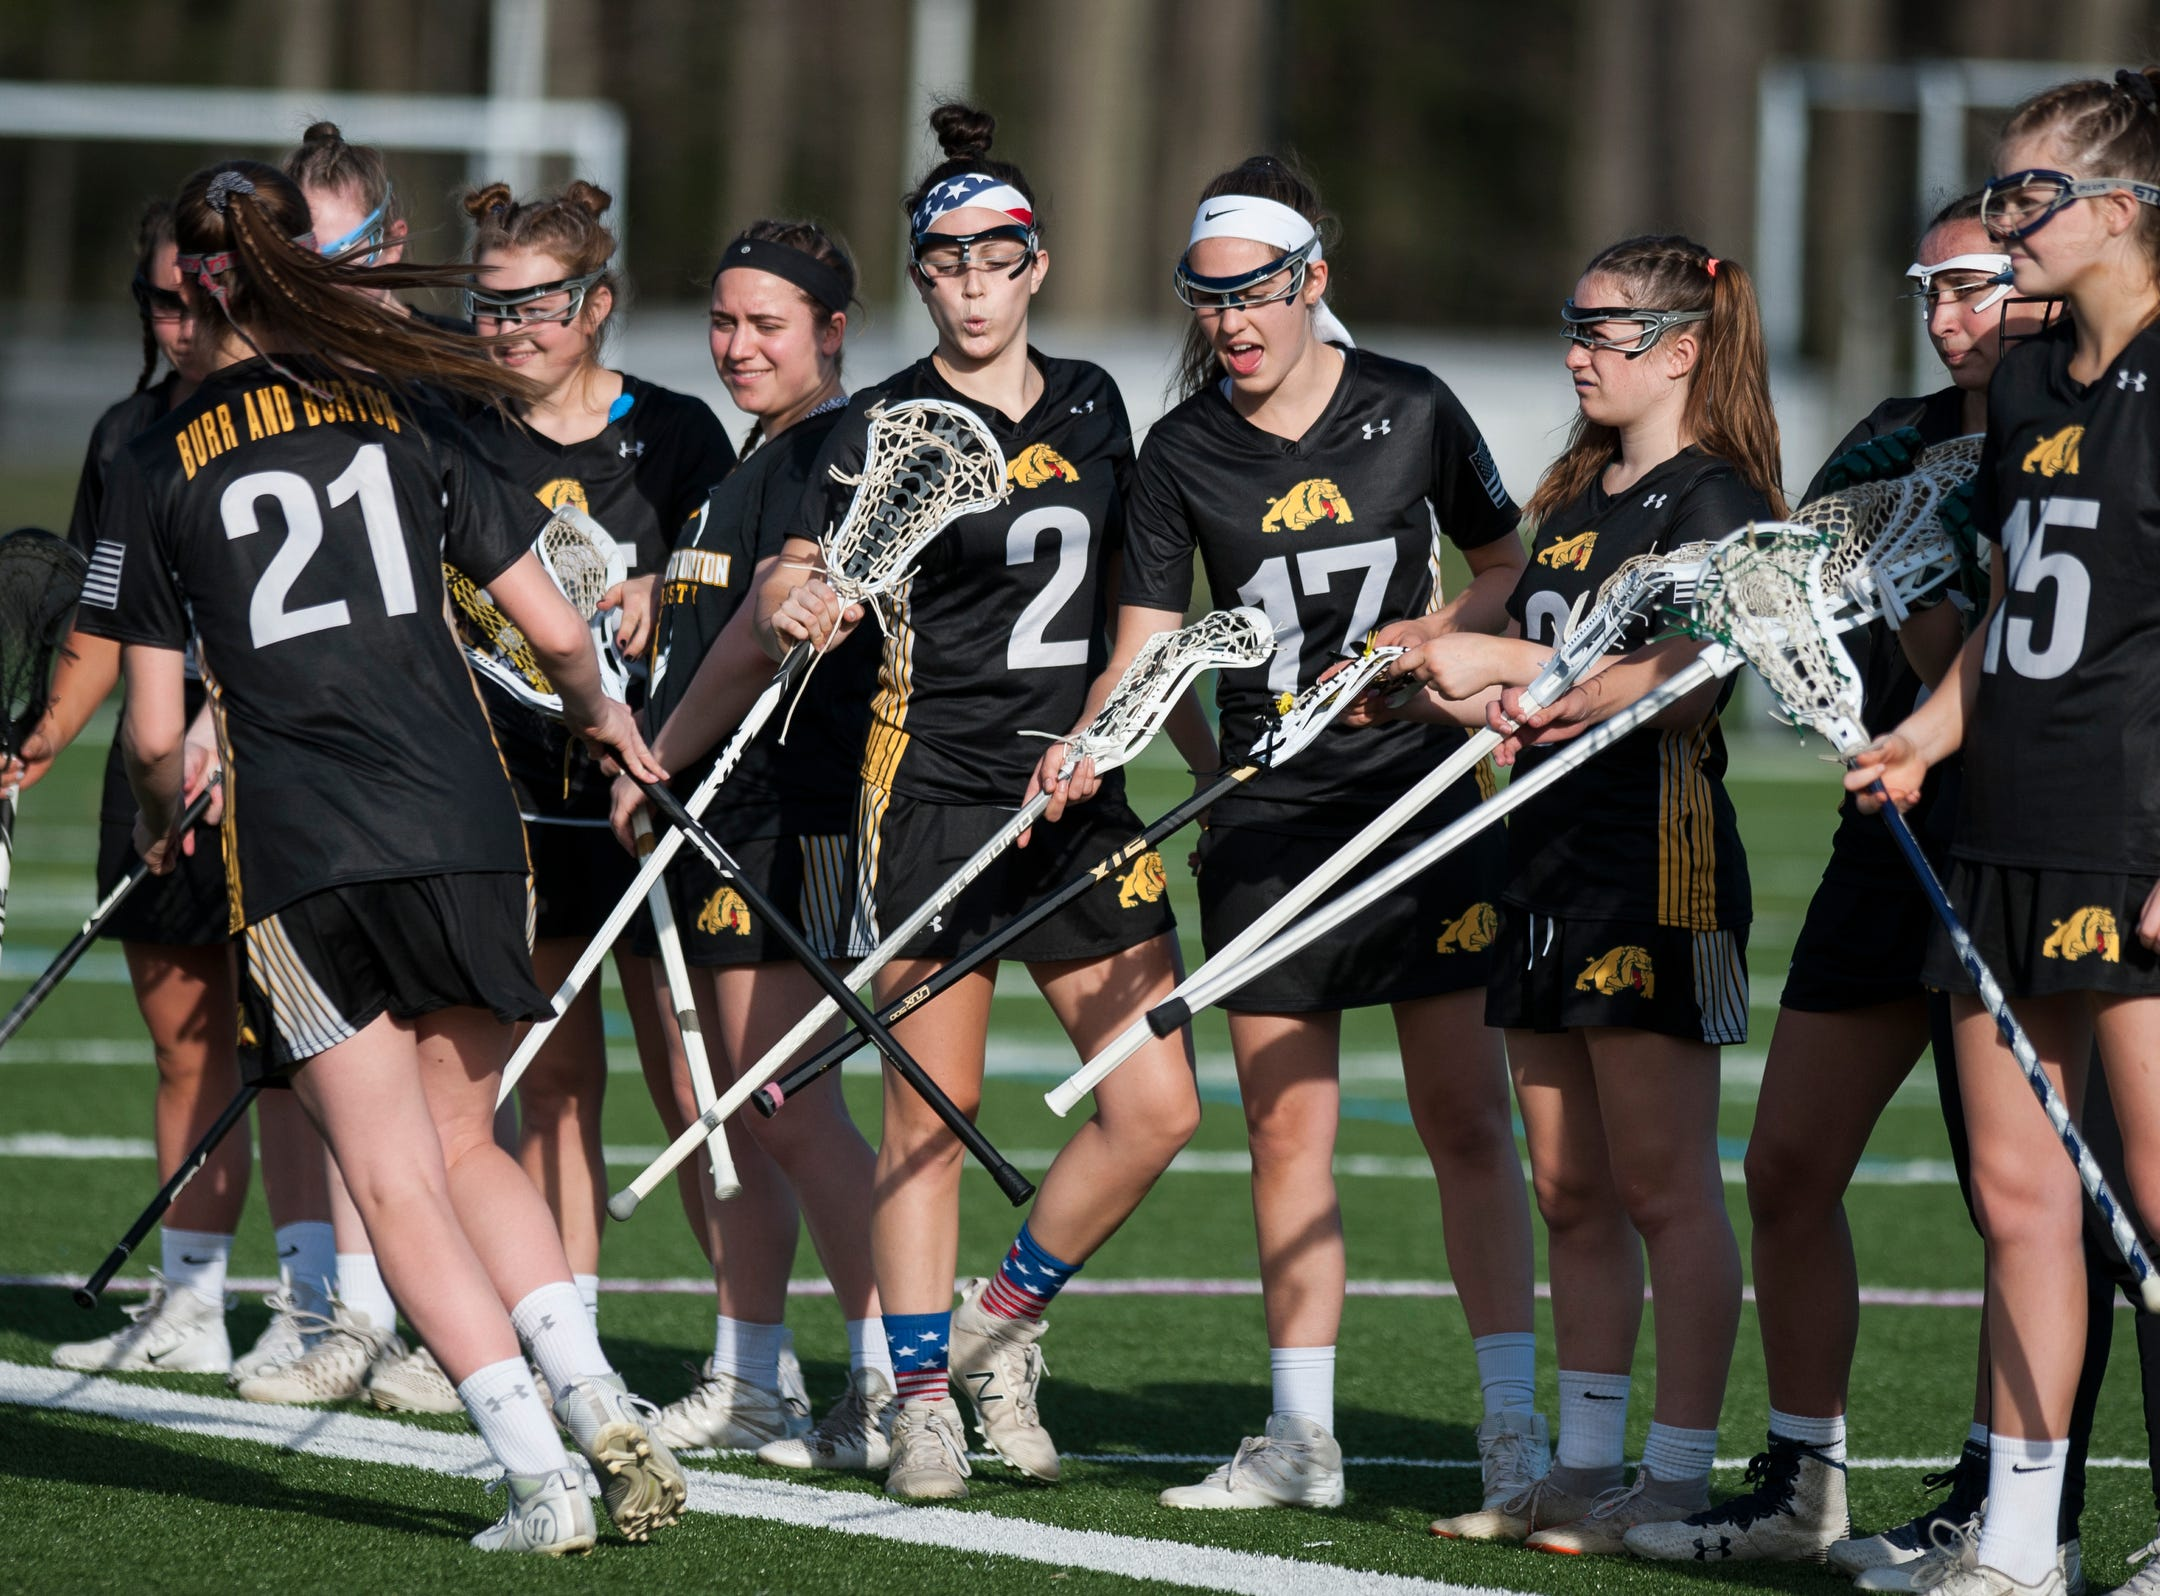 Burr and Burton girls high five each other during the high school girls lacrosse game between Burr and Burton Bulldogs and the South Burlington Wolves at Munson Field on Monday afternoon May 6, 2019 in South Burlington, Vermont.